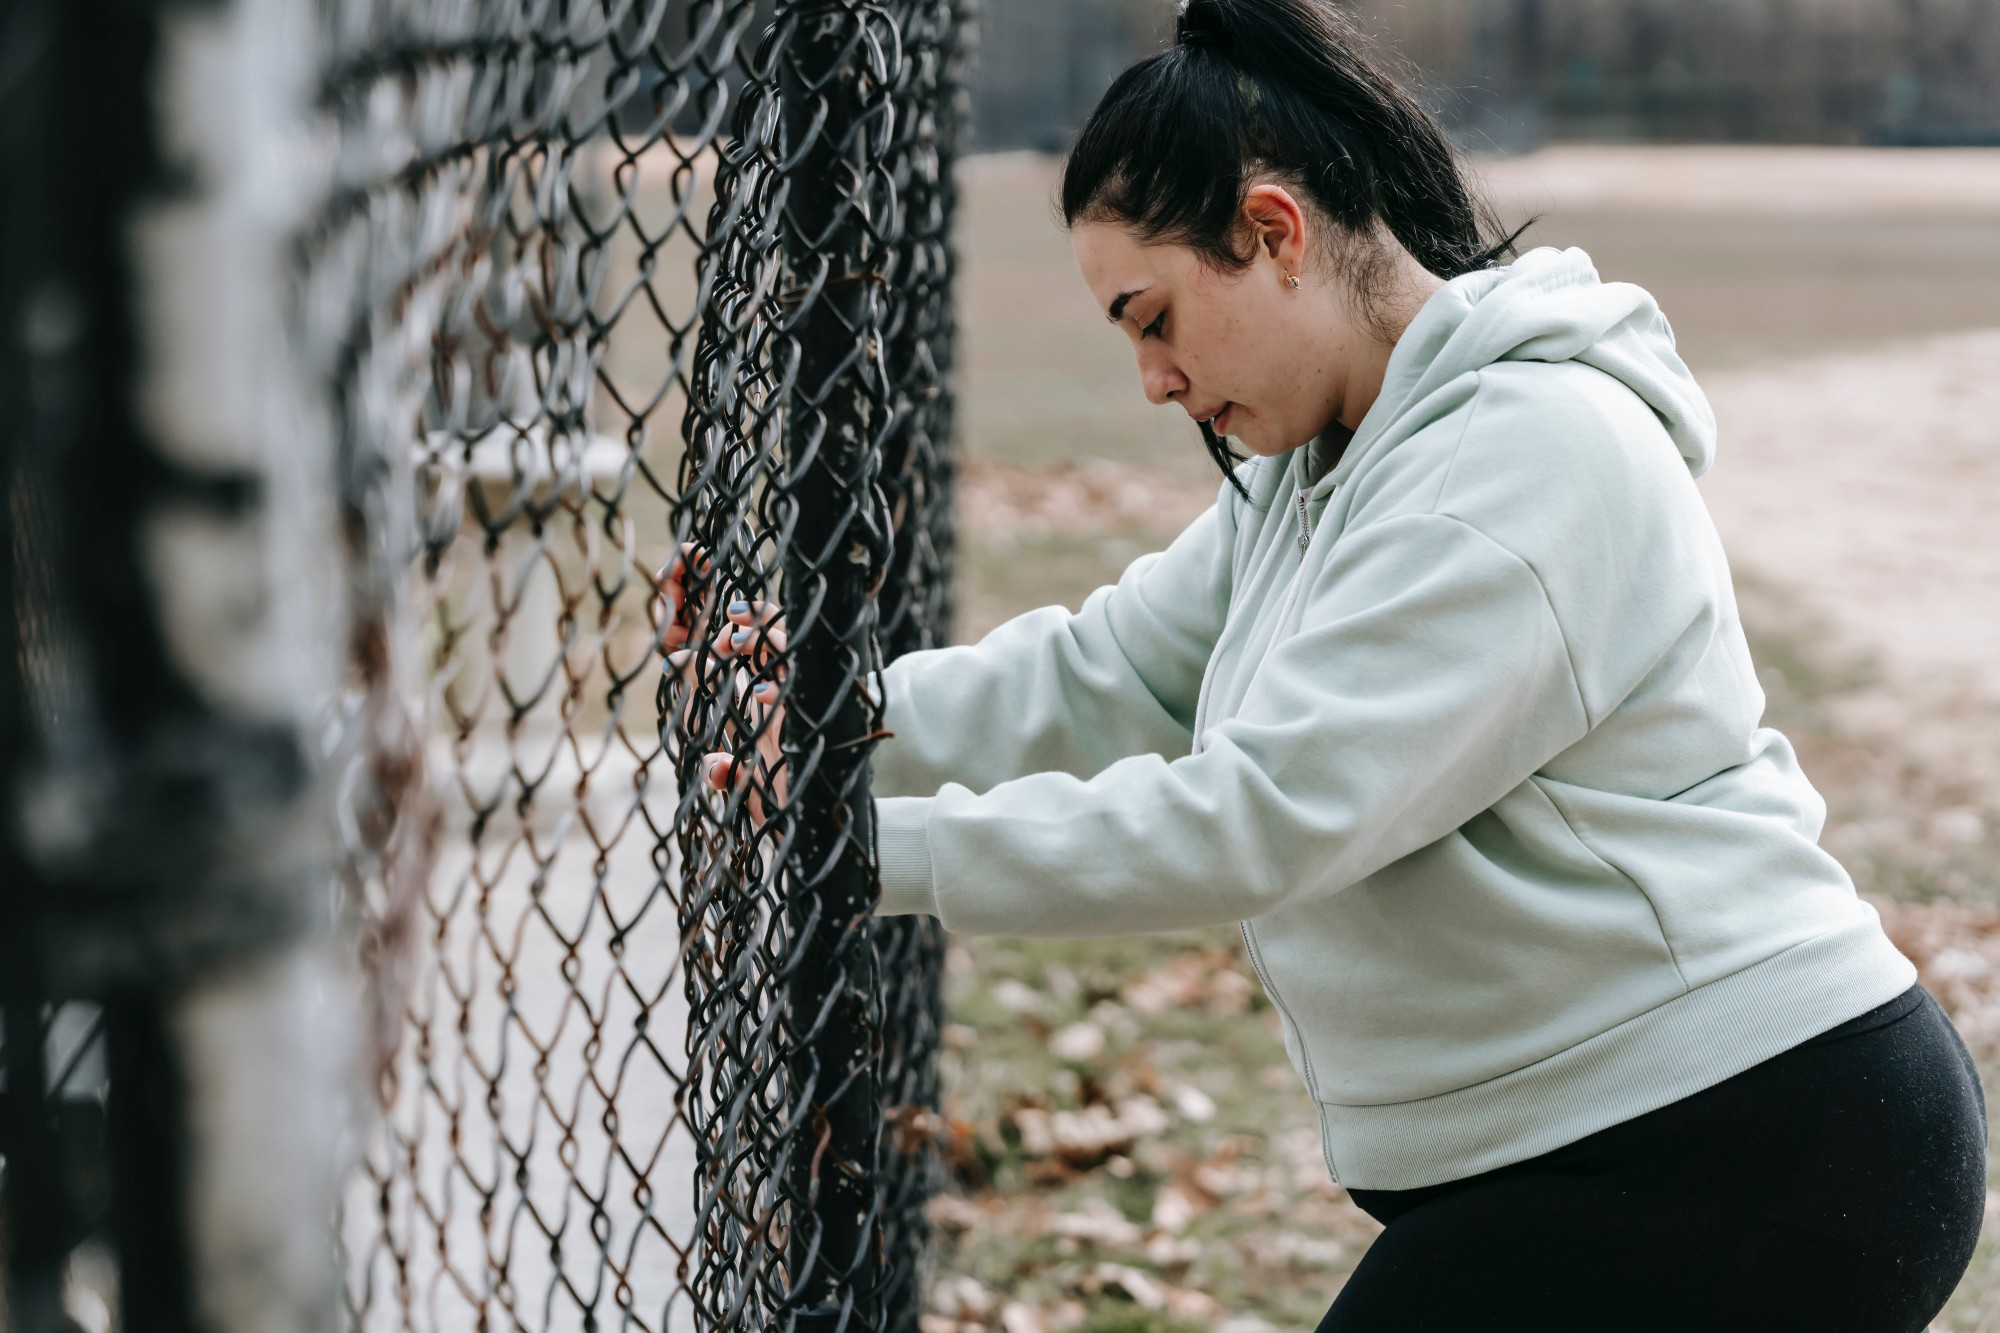 Image of a woman in workout gear looking pensive by a fence